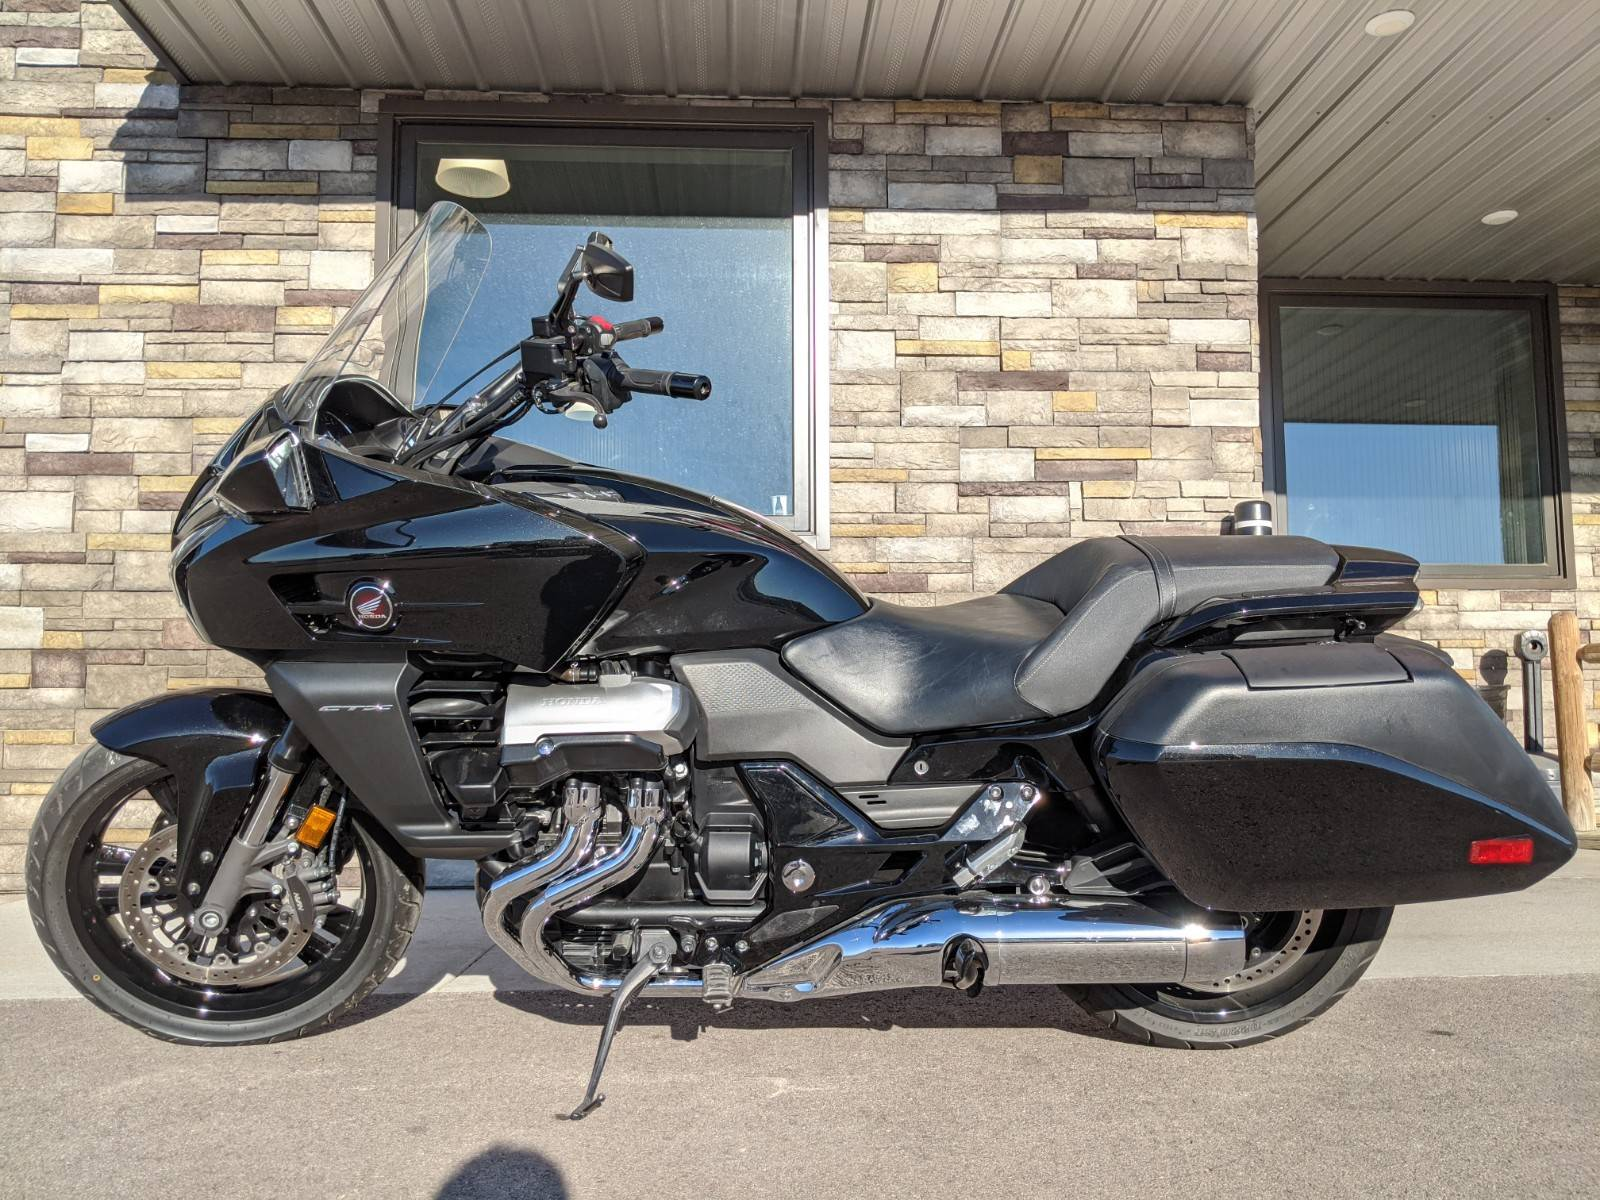 2014 Honda CTX®1300 Deluxe in Rapid City, South Dakota - Photo 2